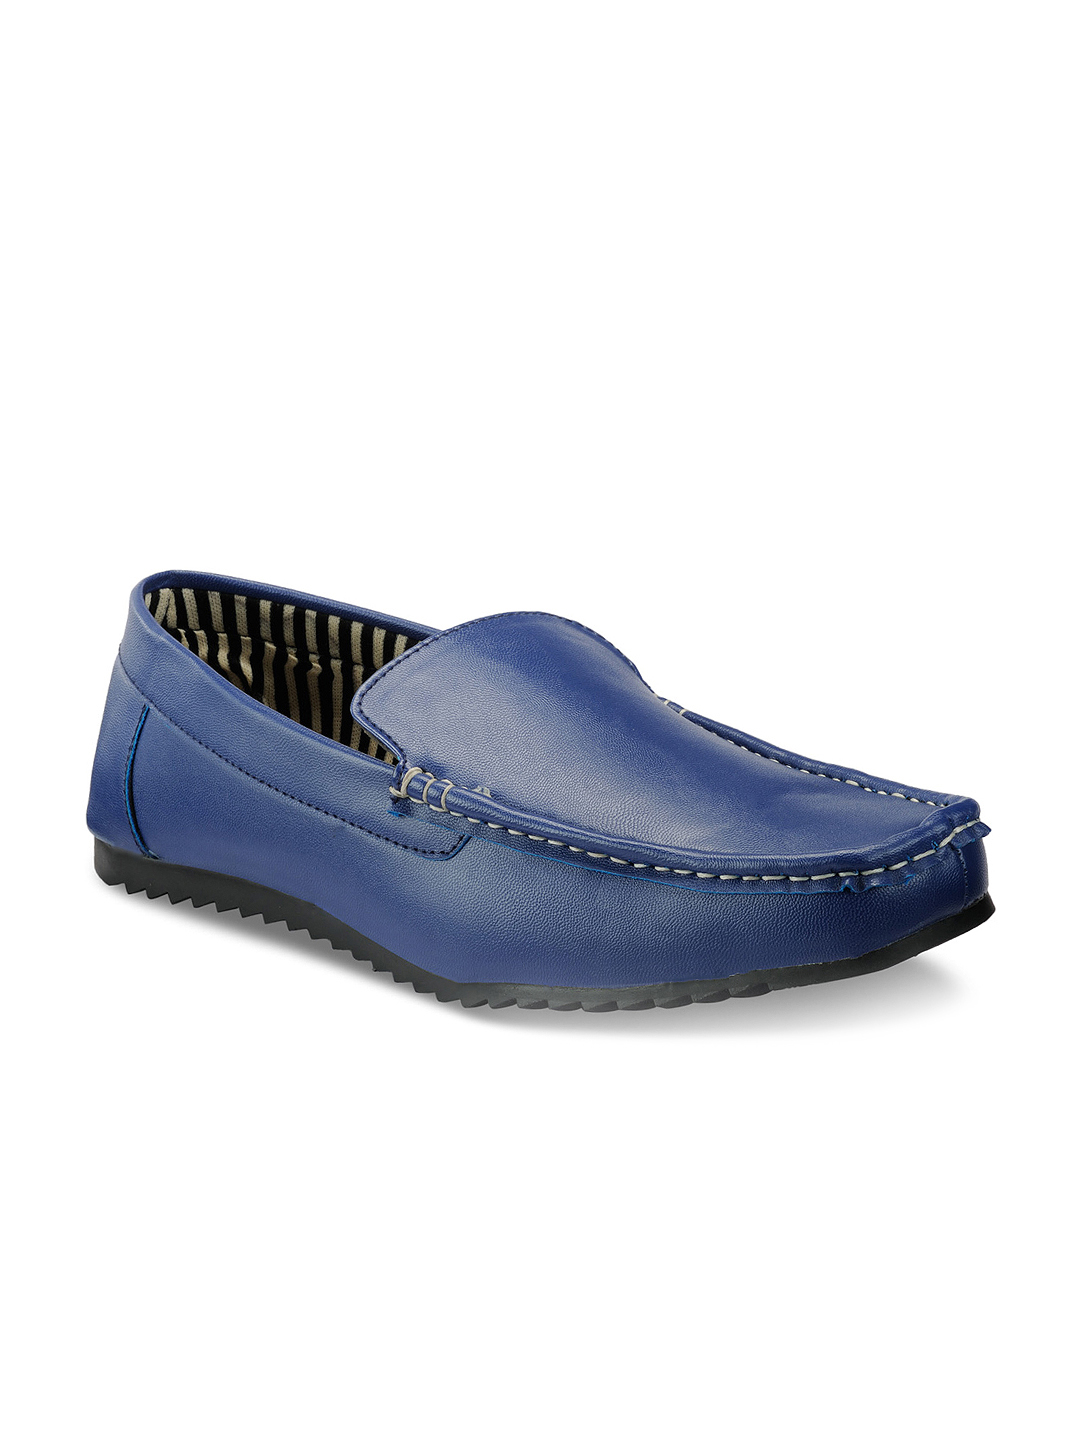 Ucb Loafer Shoes - 28 Images - Ucb Loafer Shoes 28 Images Buy United Colors Of Ucb Loafers 28 ...